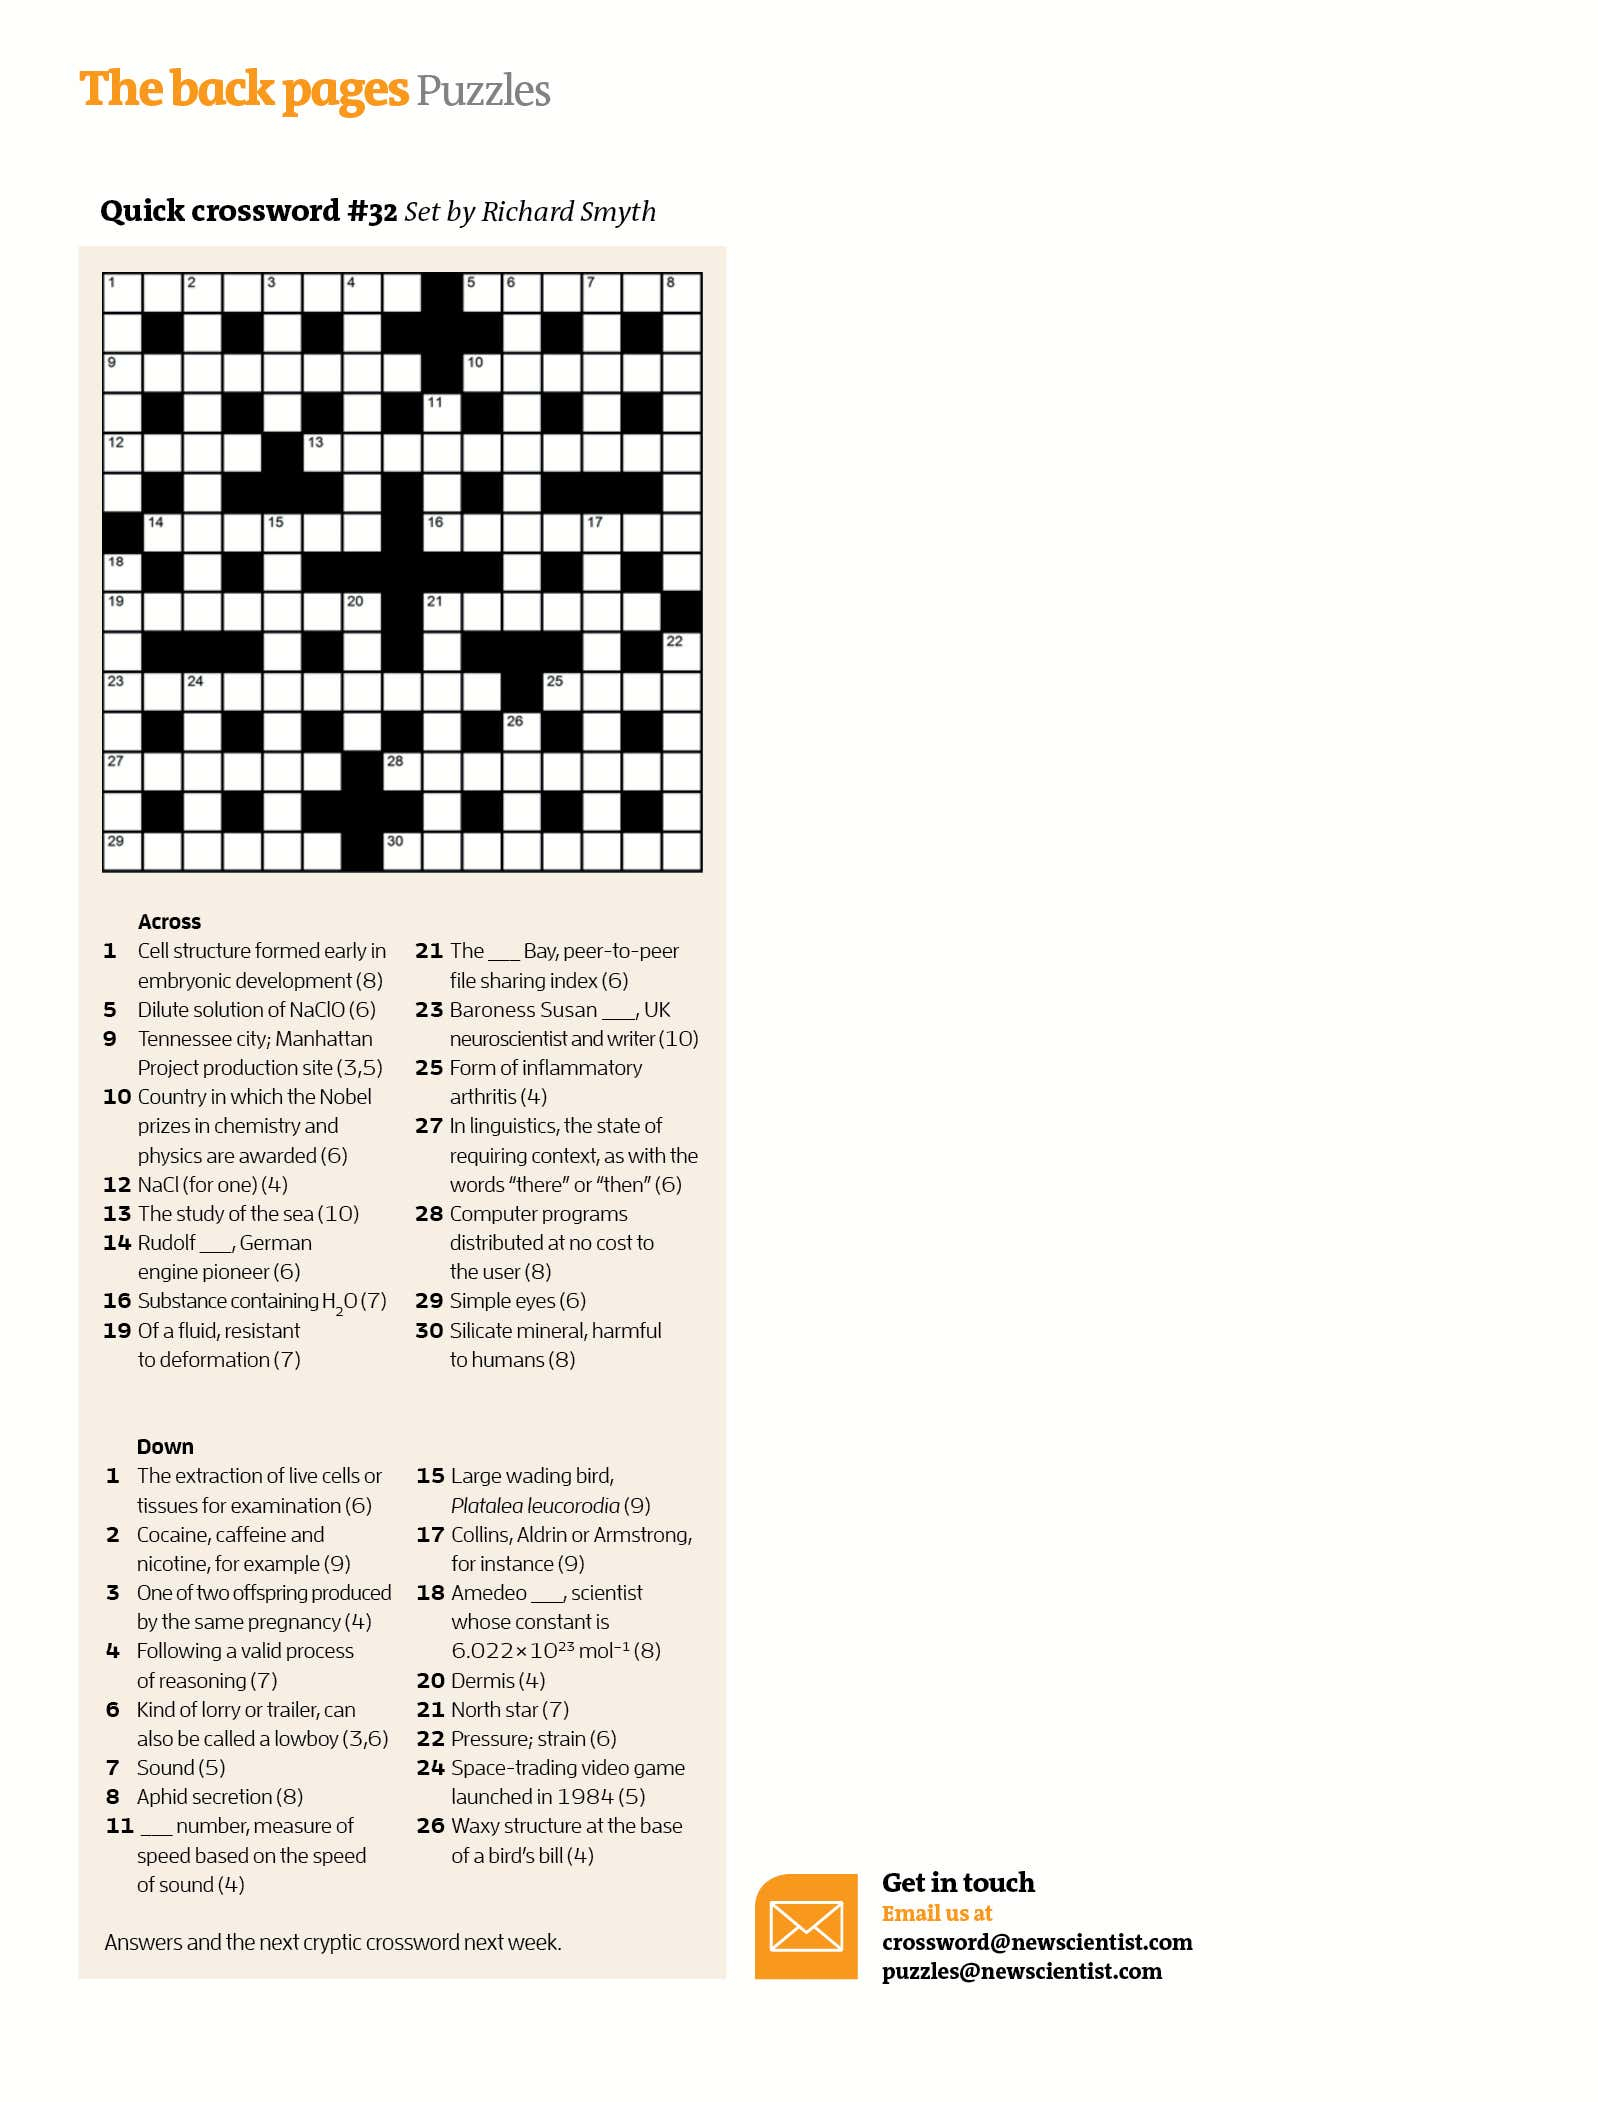 Quick Crossword #32 | New Scientist - Daily Quick Crossword Printable Version